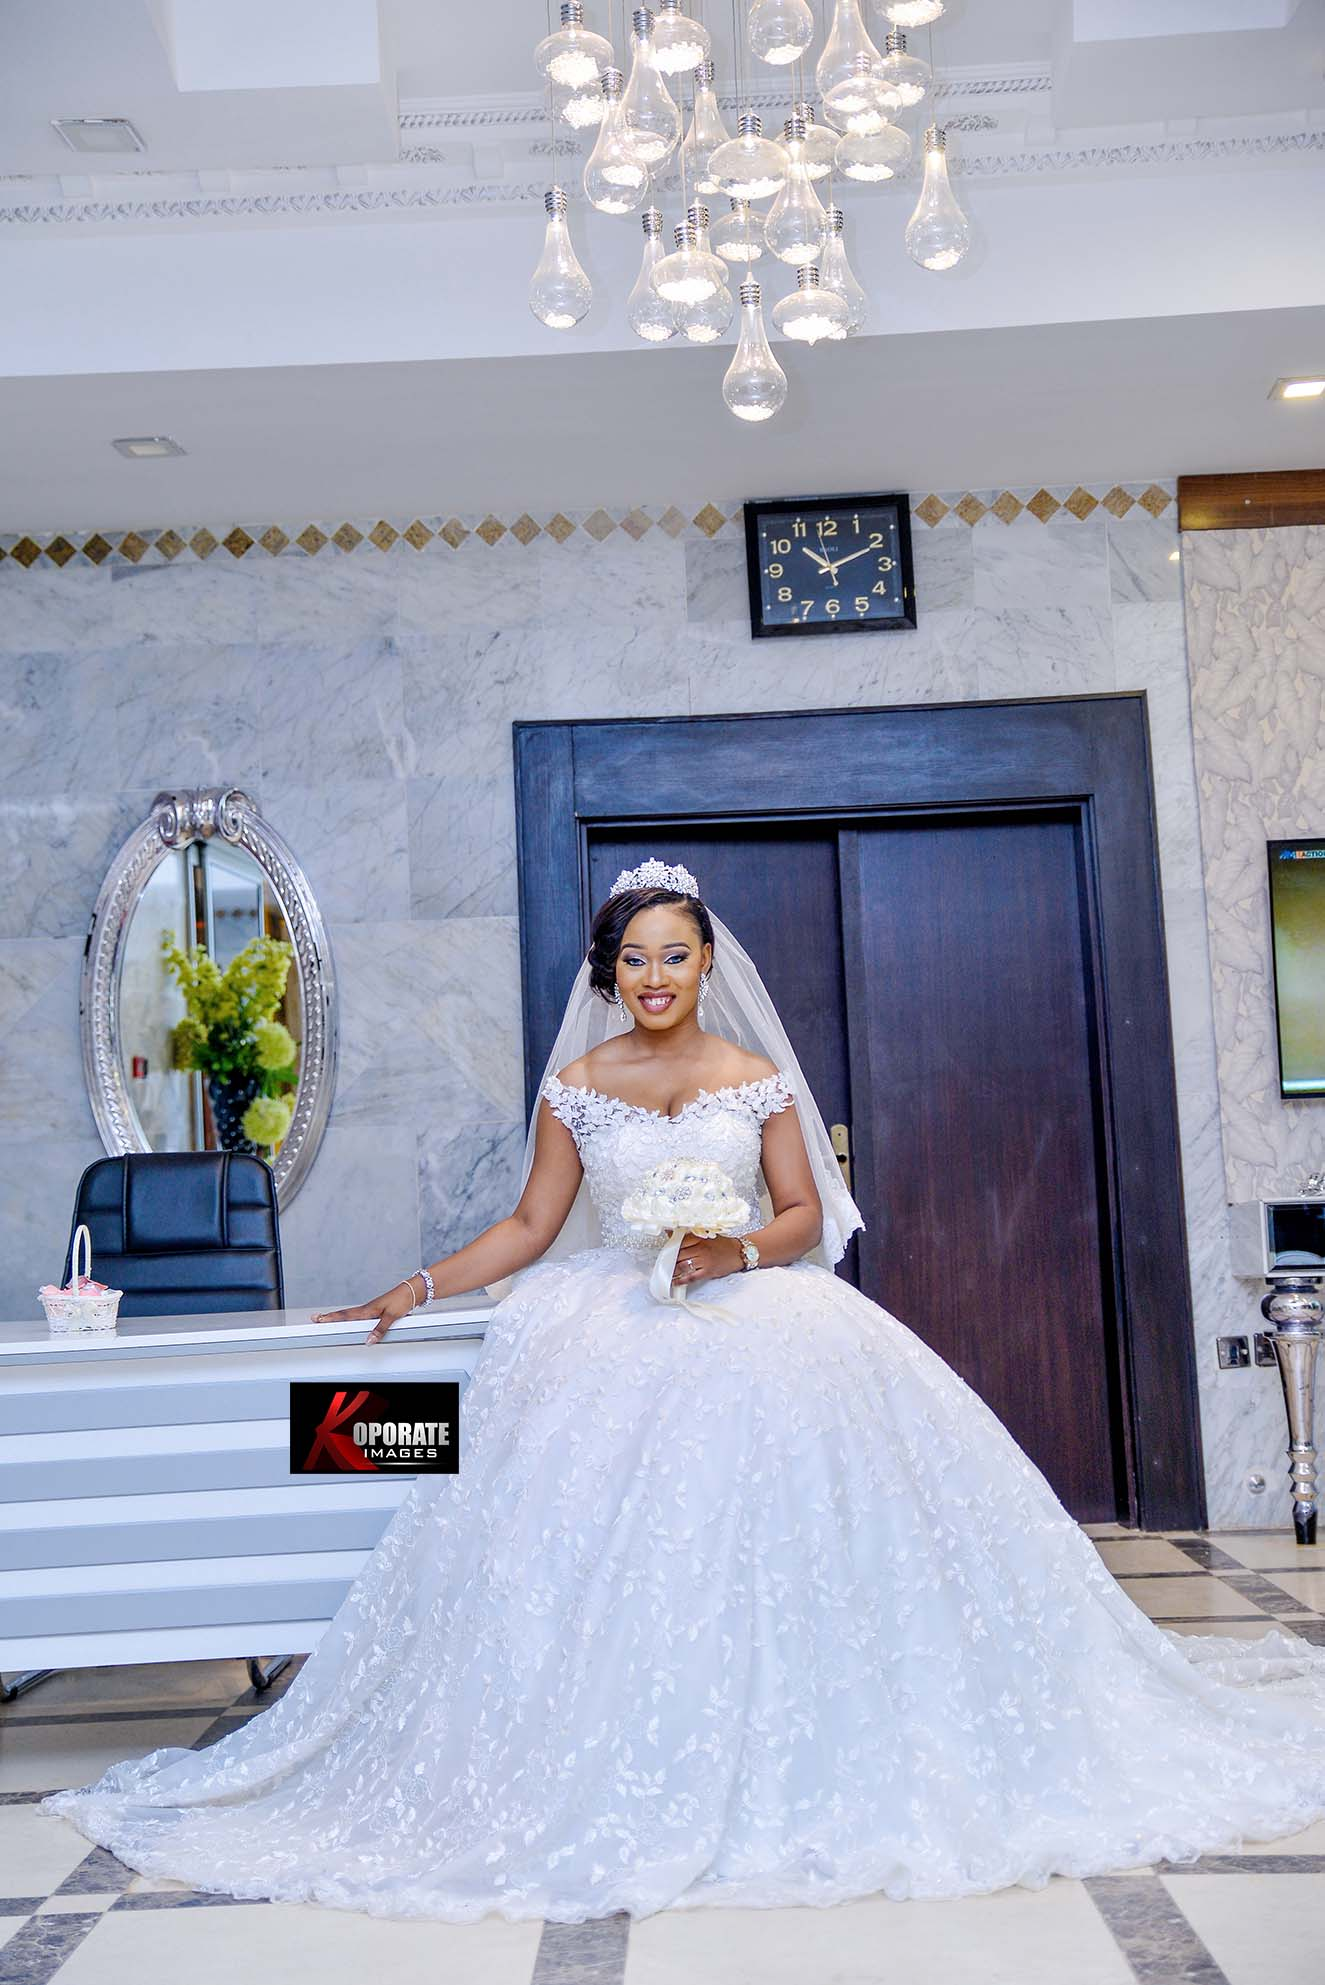 AMAZING WEDDING  PICTURES wedding photos|Koporate Images|Photography & Video Coverage studio in Benin City|Professional Photographers for your events|Nigerian Wedding Photographer in Benin City|Edo Brides, benin brides